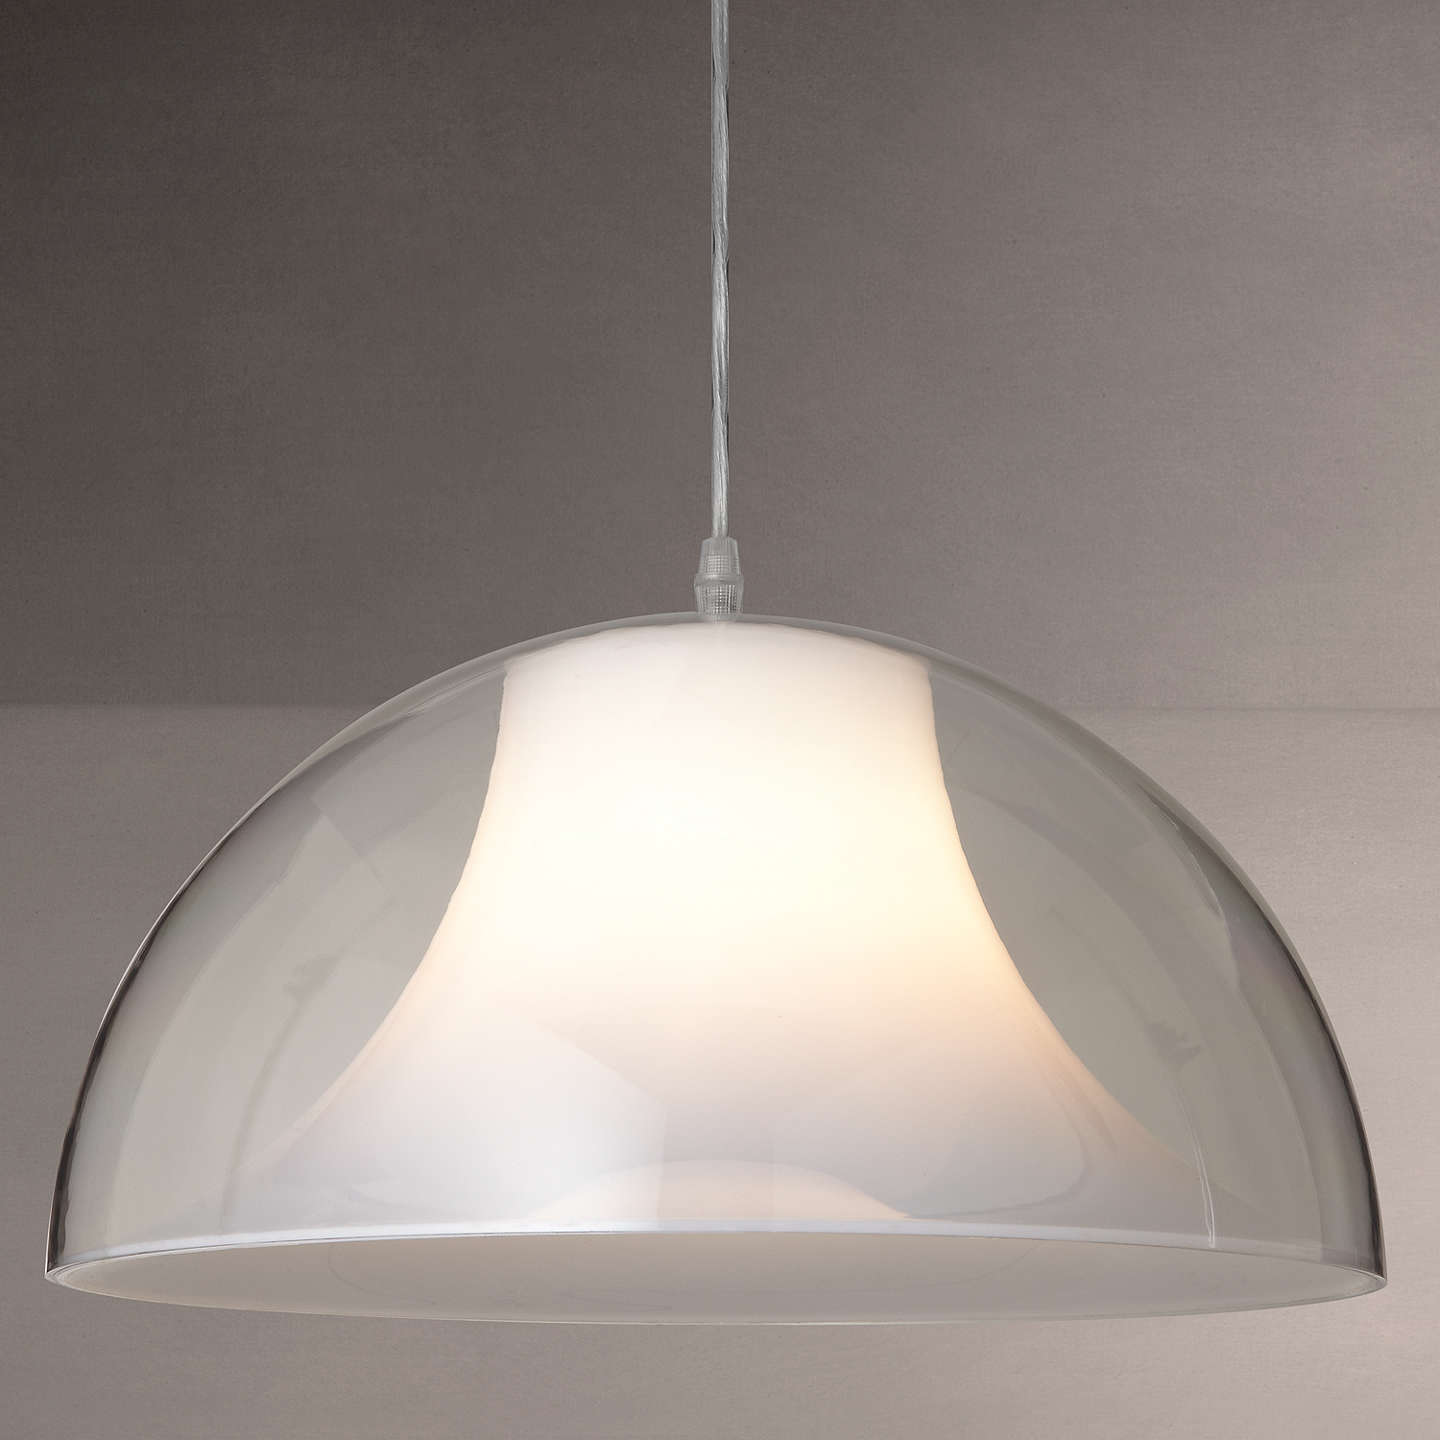 inch edison sleek lighting dome pendant industville pewter copper light so lt products